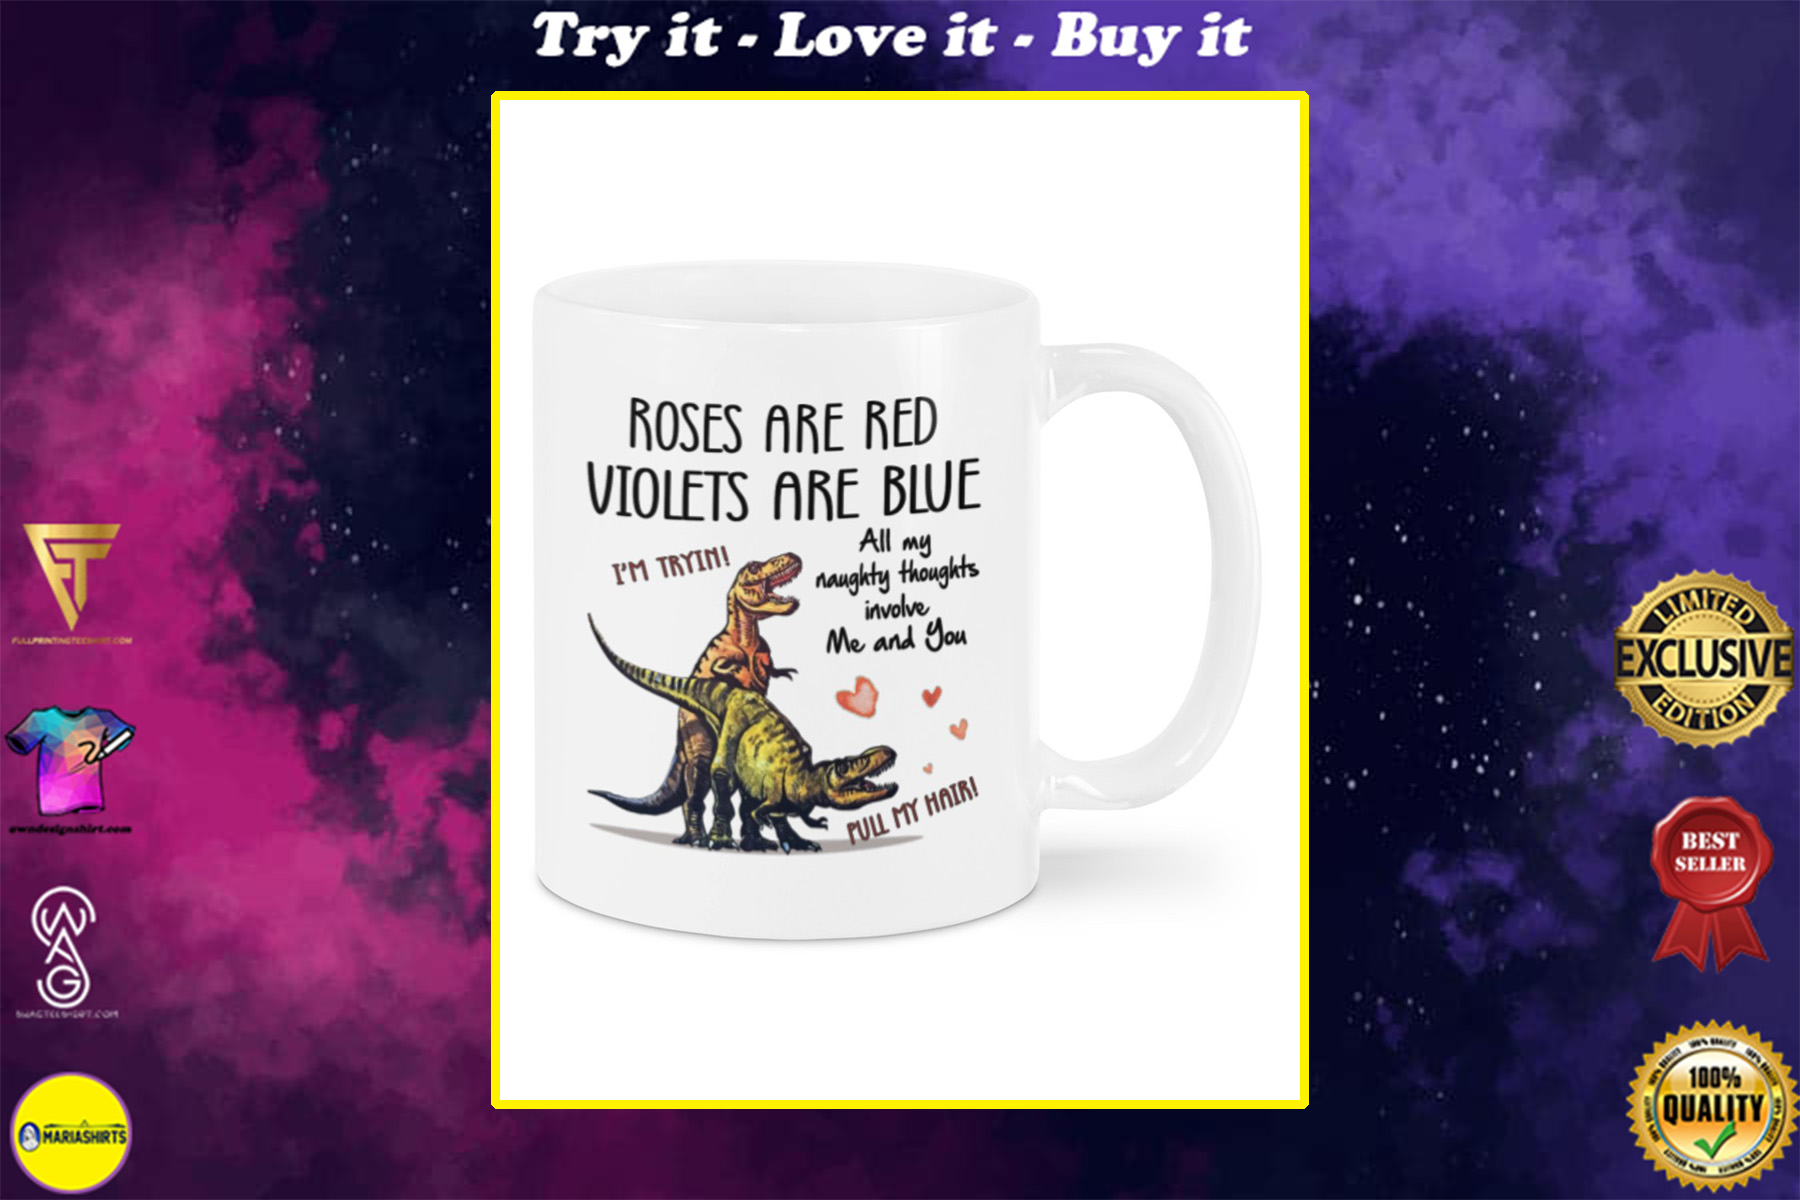 all my naughty thoughts involve me and you im trying pull my hair mug